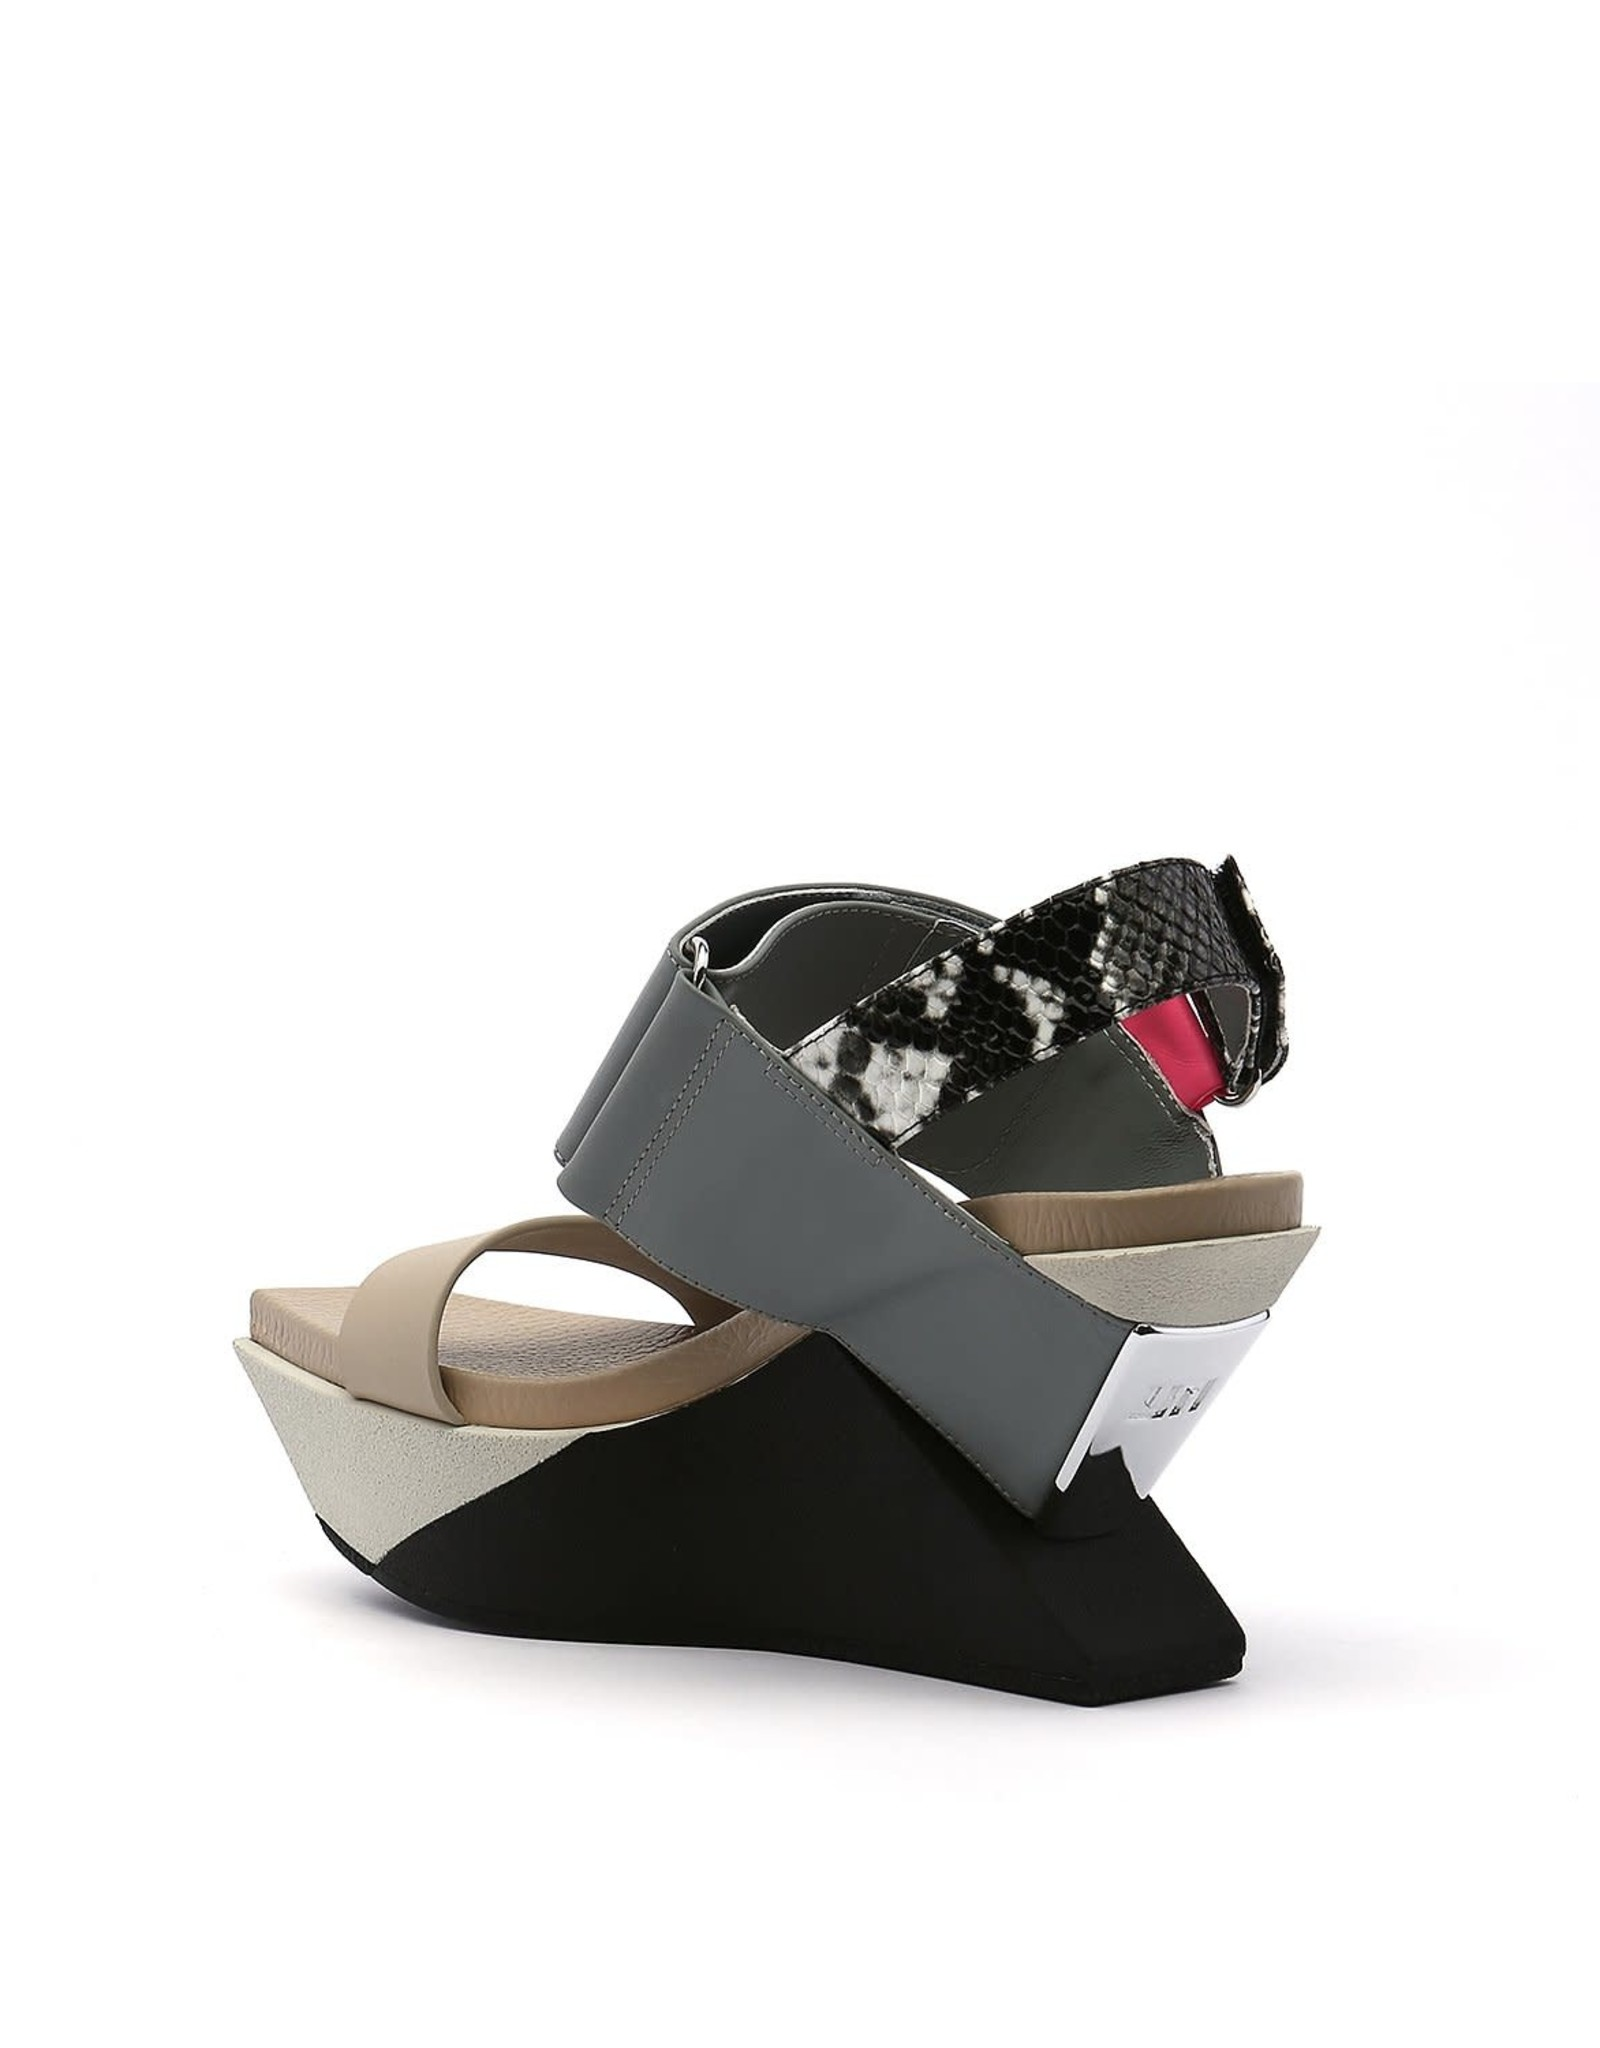 UNITED NUDE - Delta Wedge Sandal